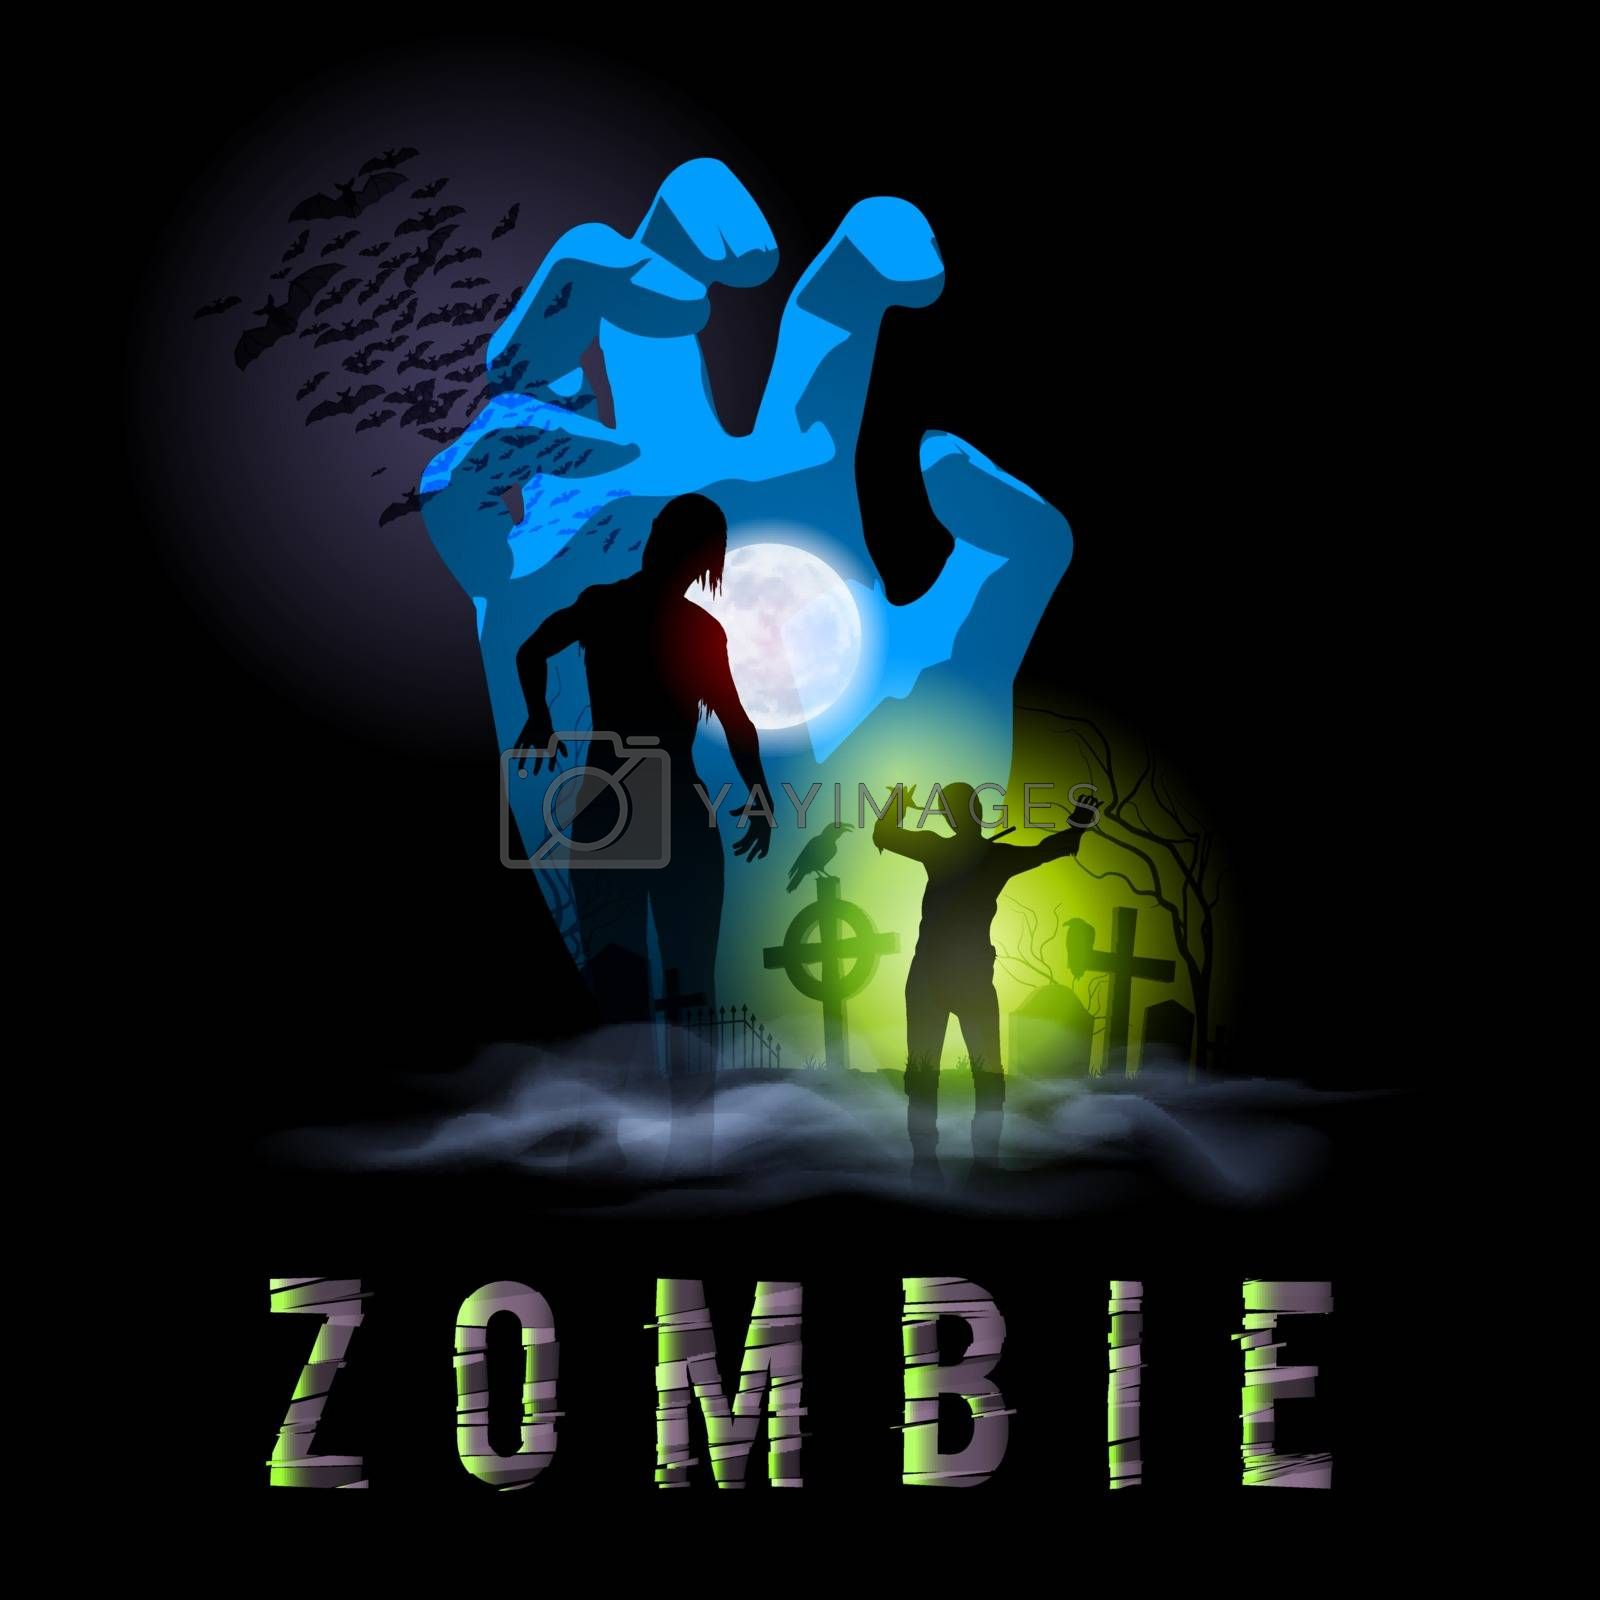 Zombie Walking Silhouettes out from Grave. Illustration for Halloween Poster